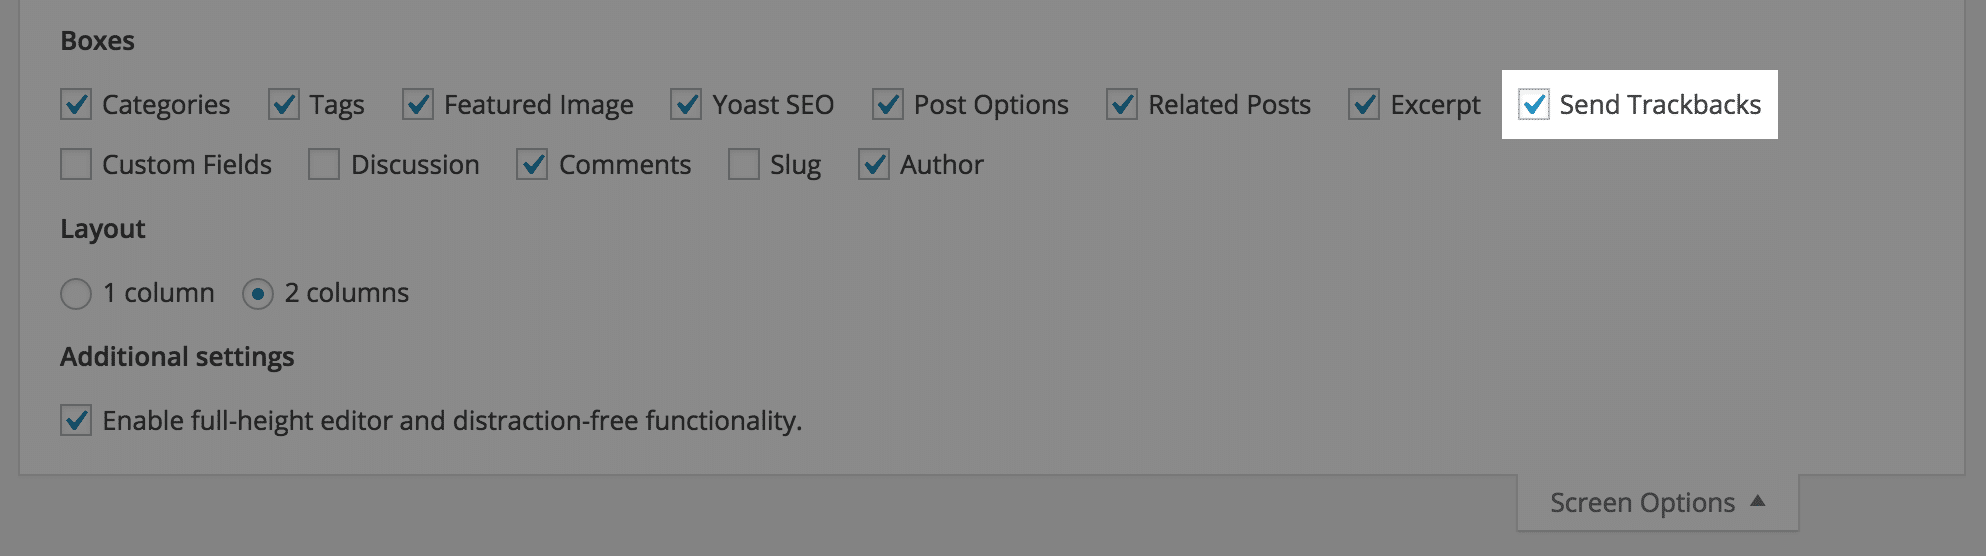 Trackback view setting in WordPress screen options section